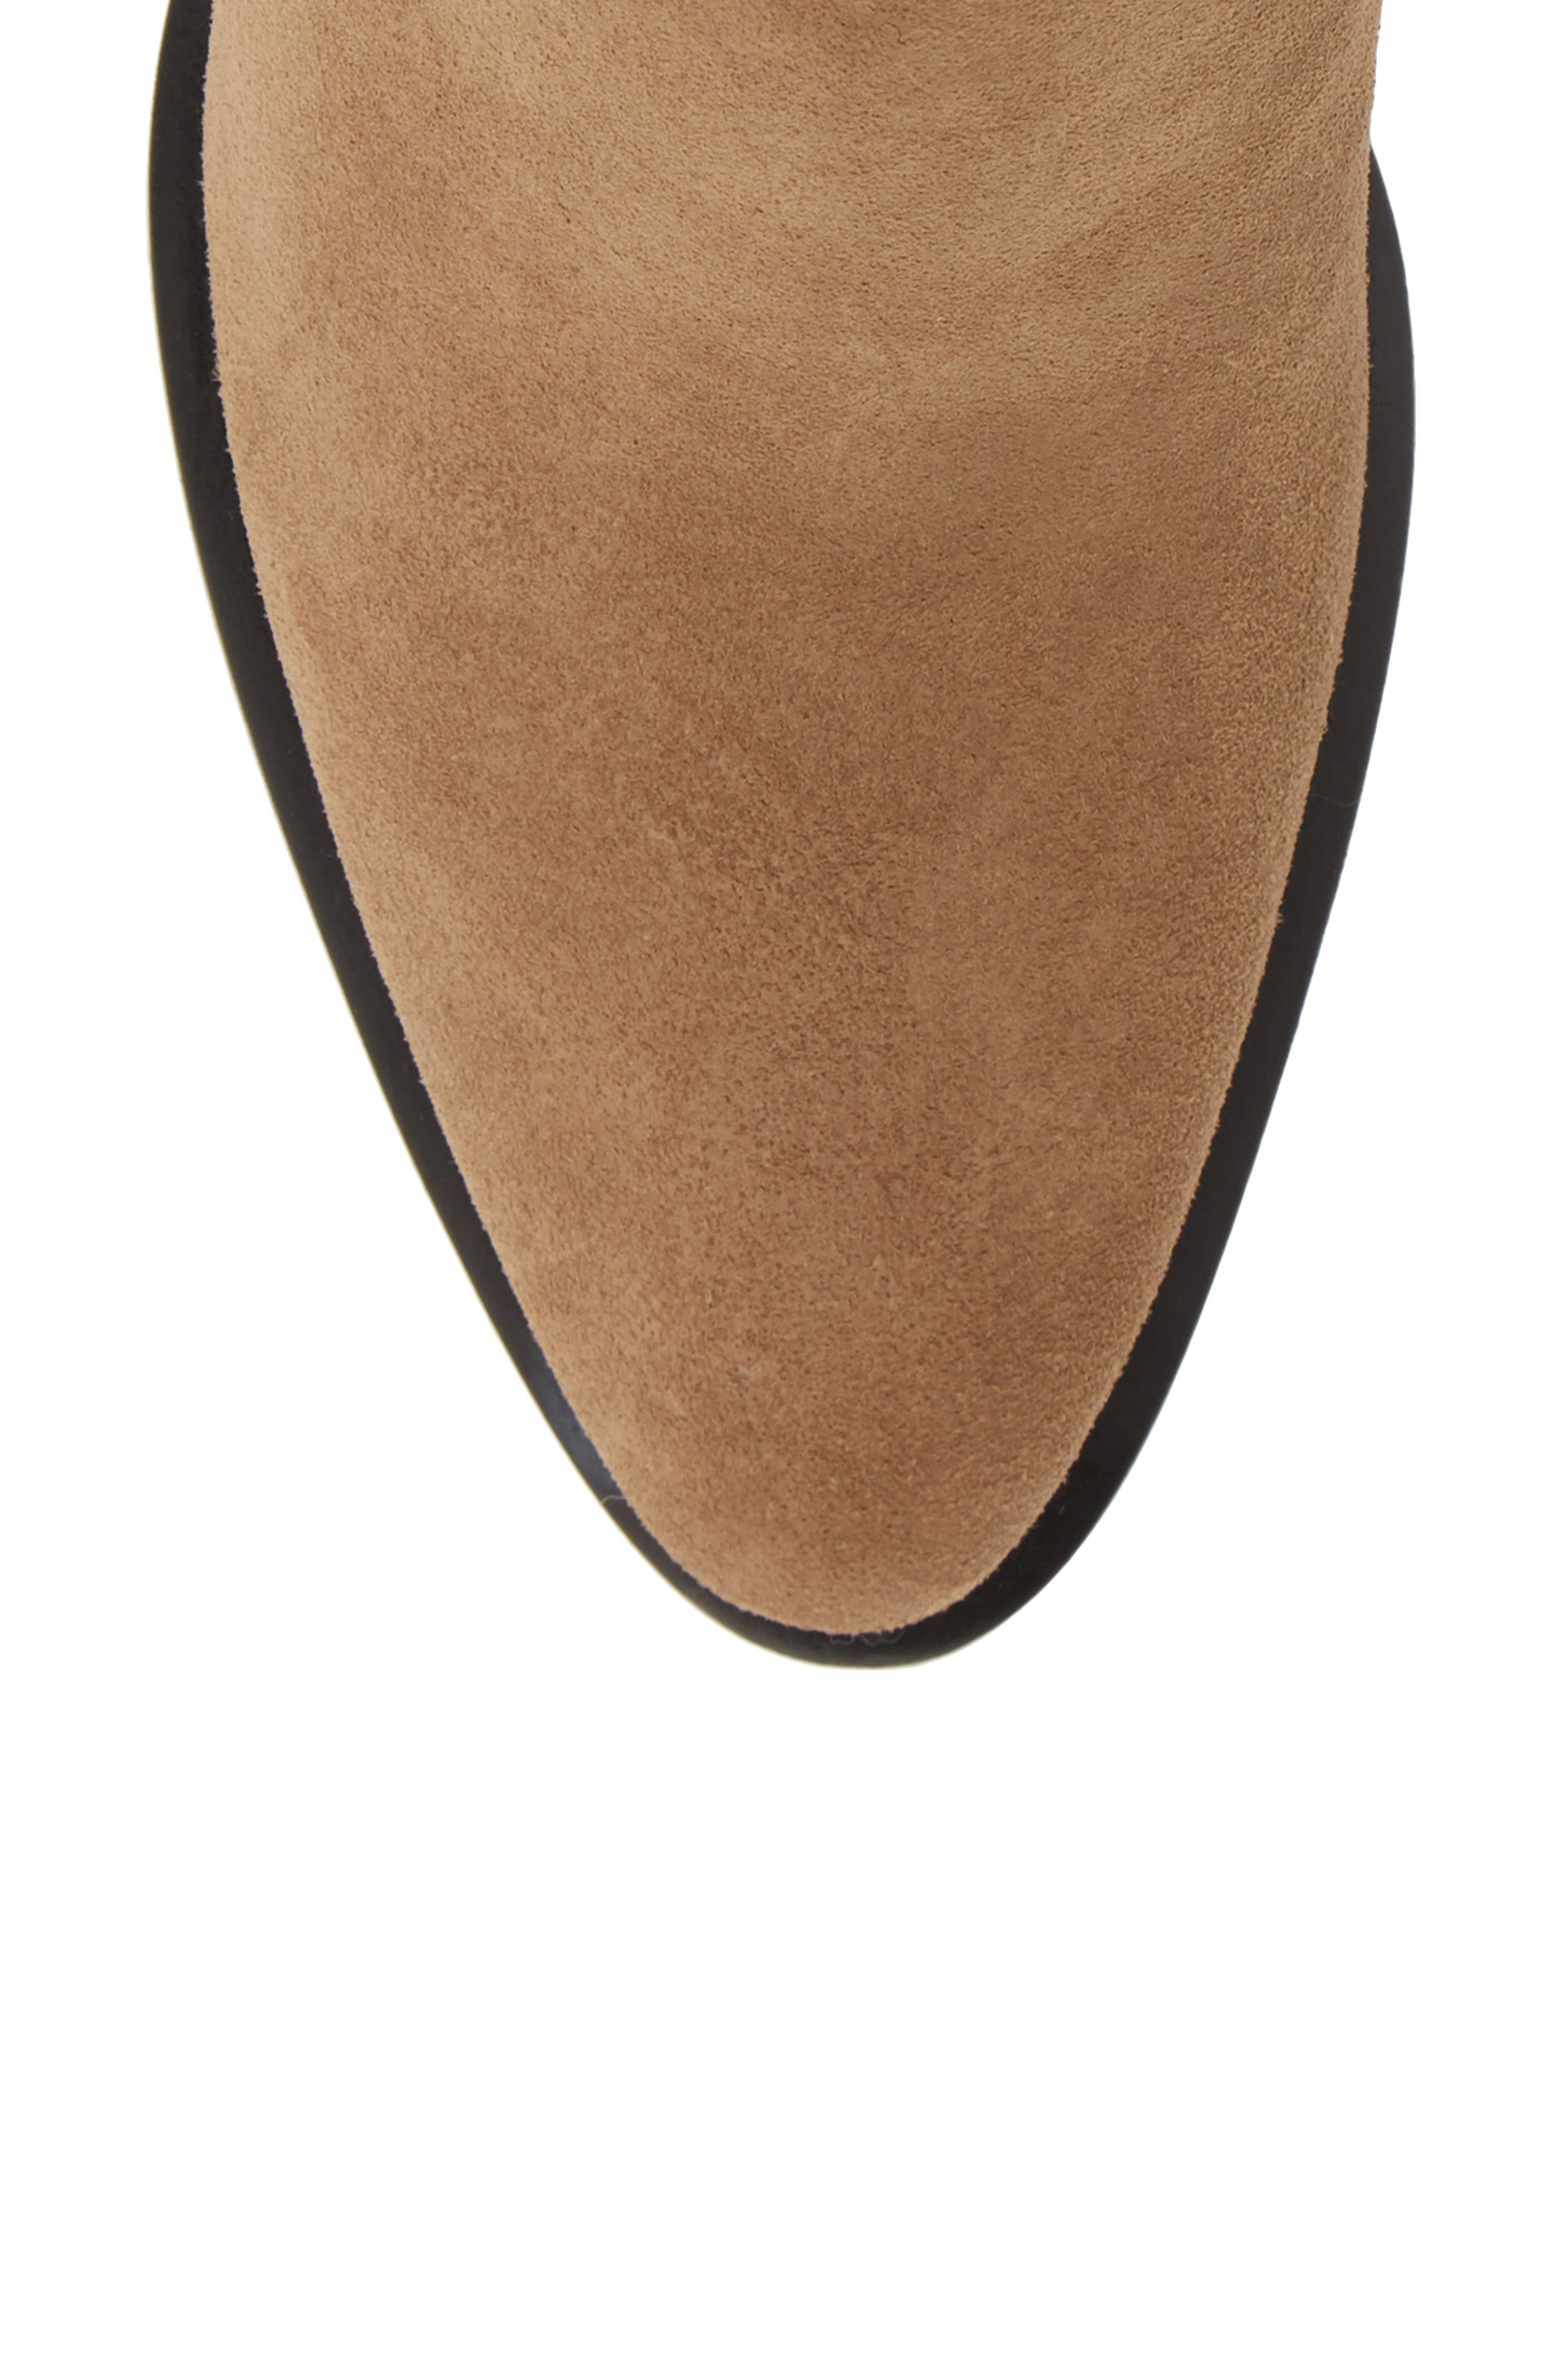 ALEXANDER WANG, Anna Mid Bootie, Alternate thumbnail 5, color, SAND SUEDE